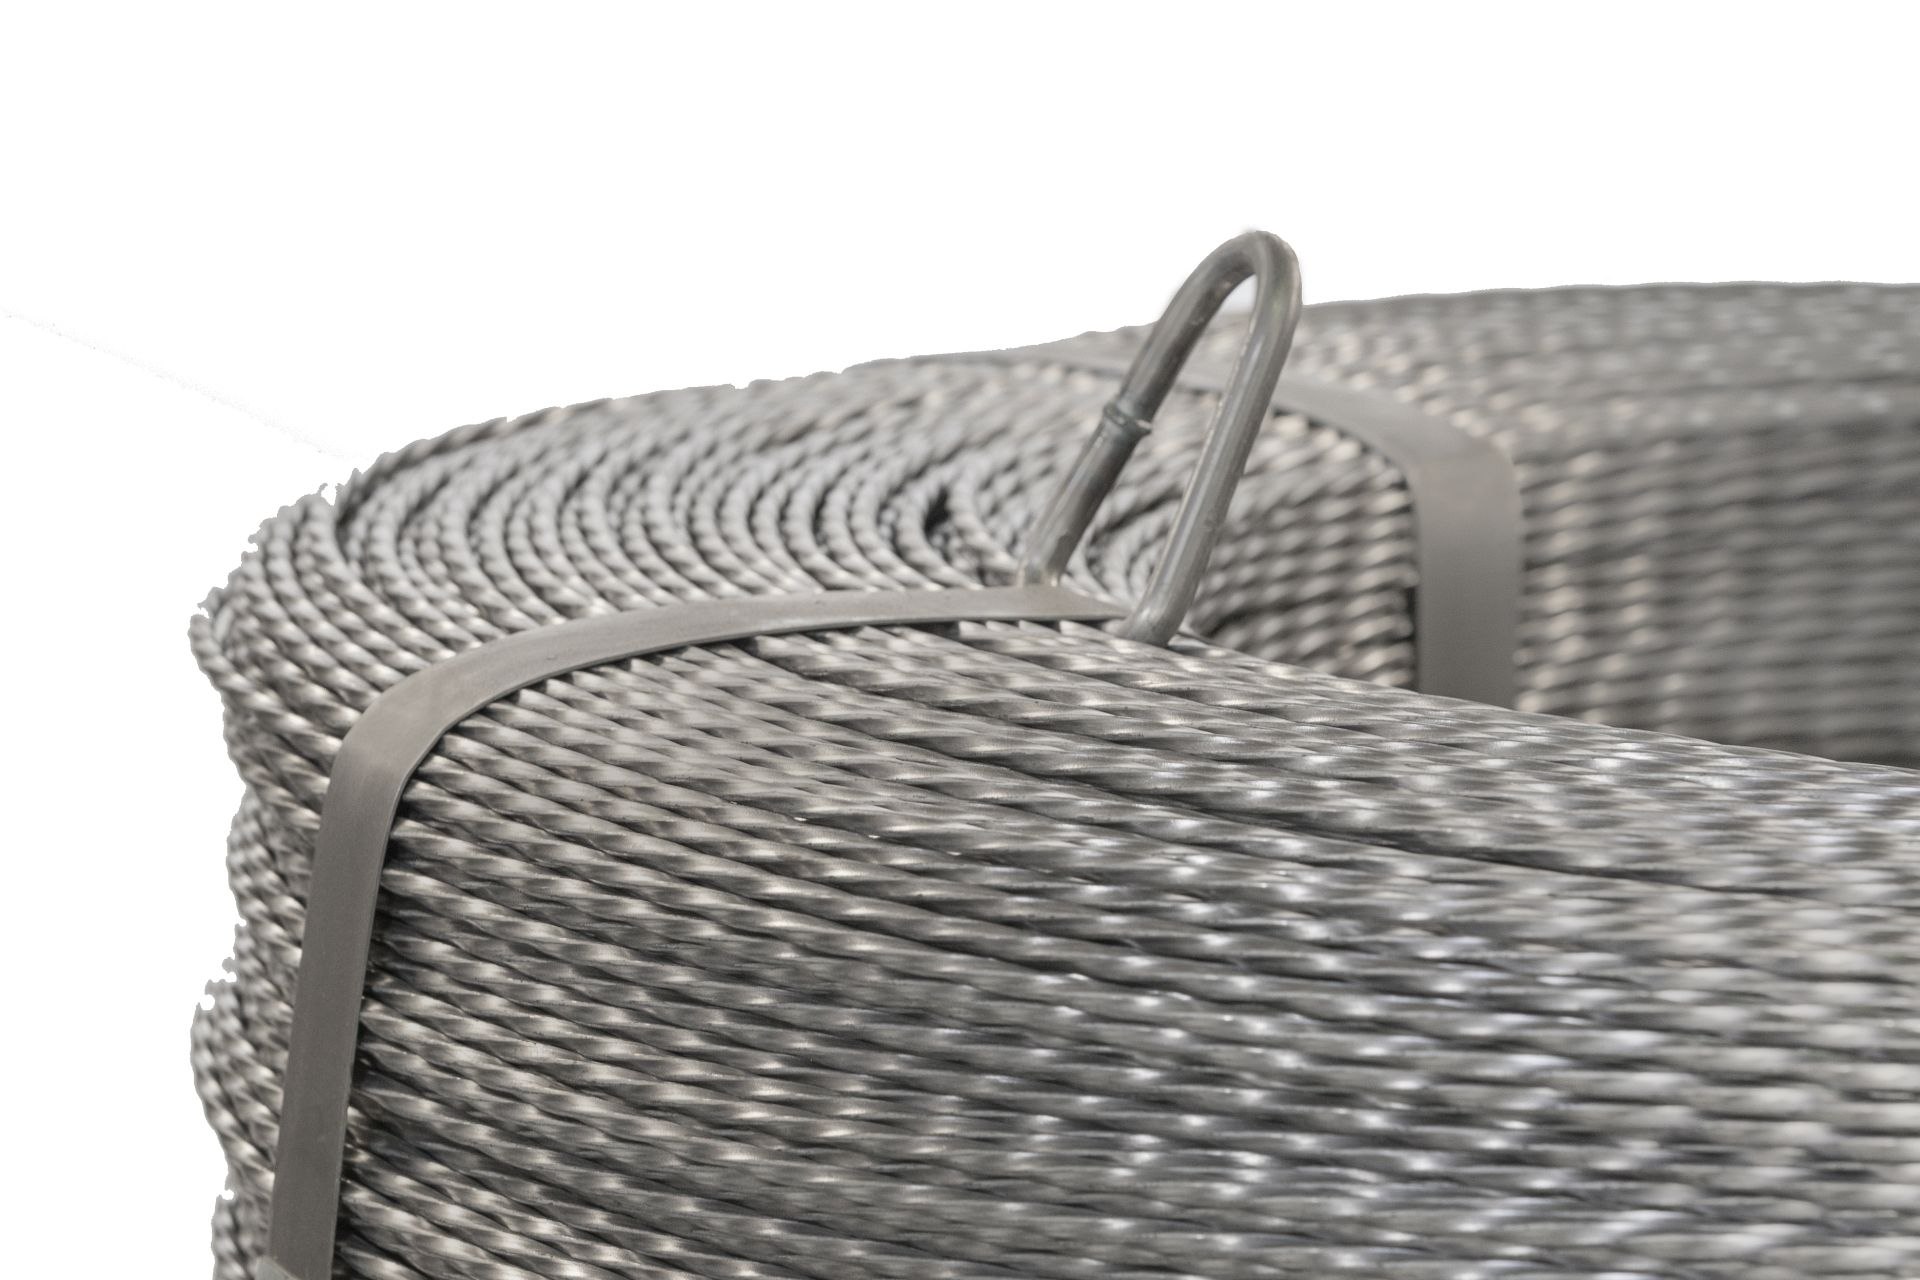 Square twisted wire